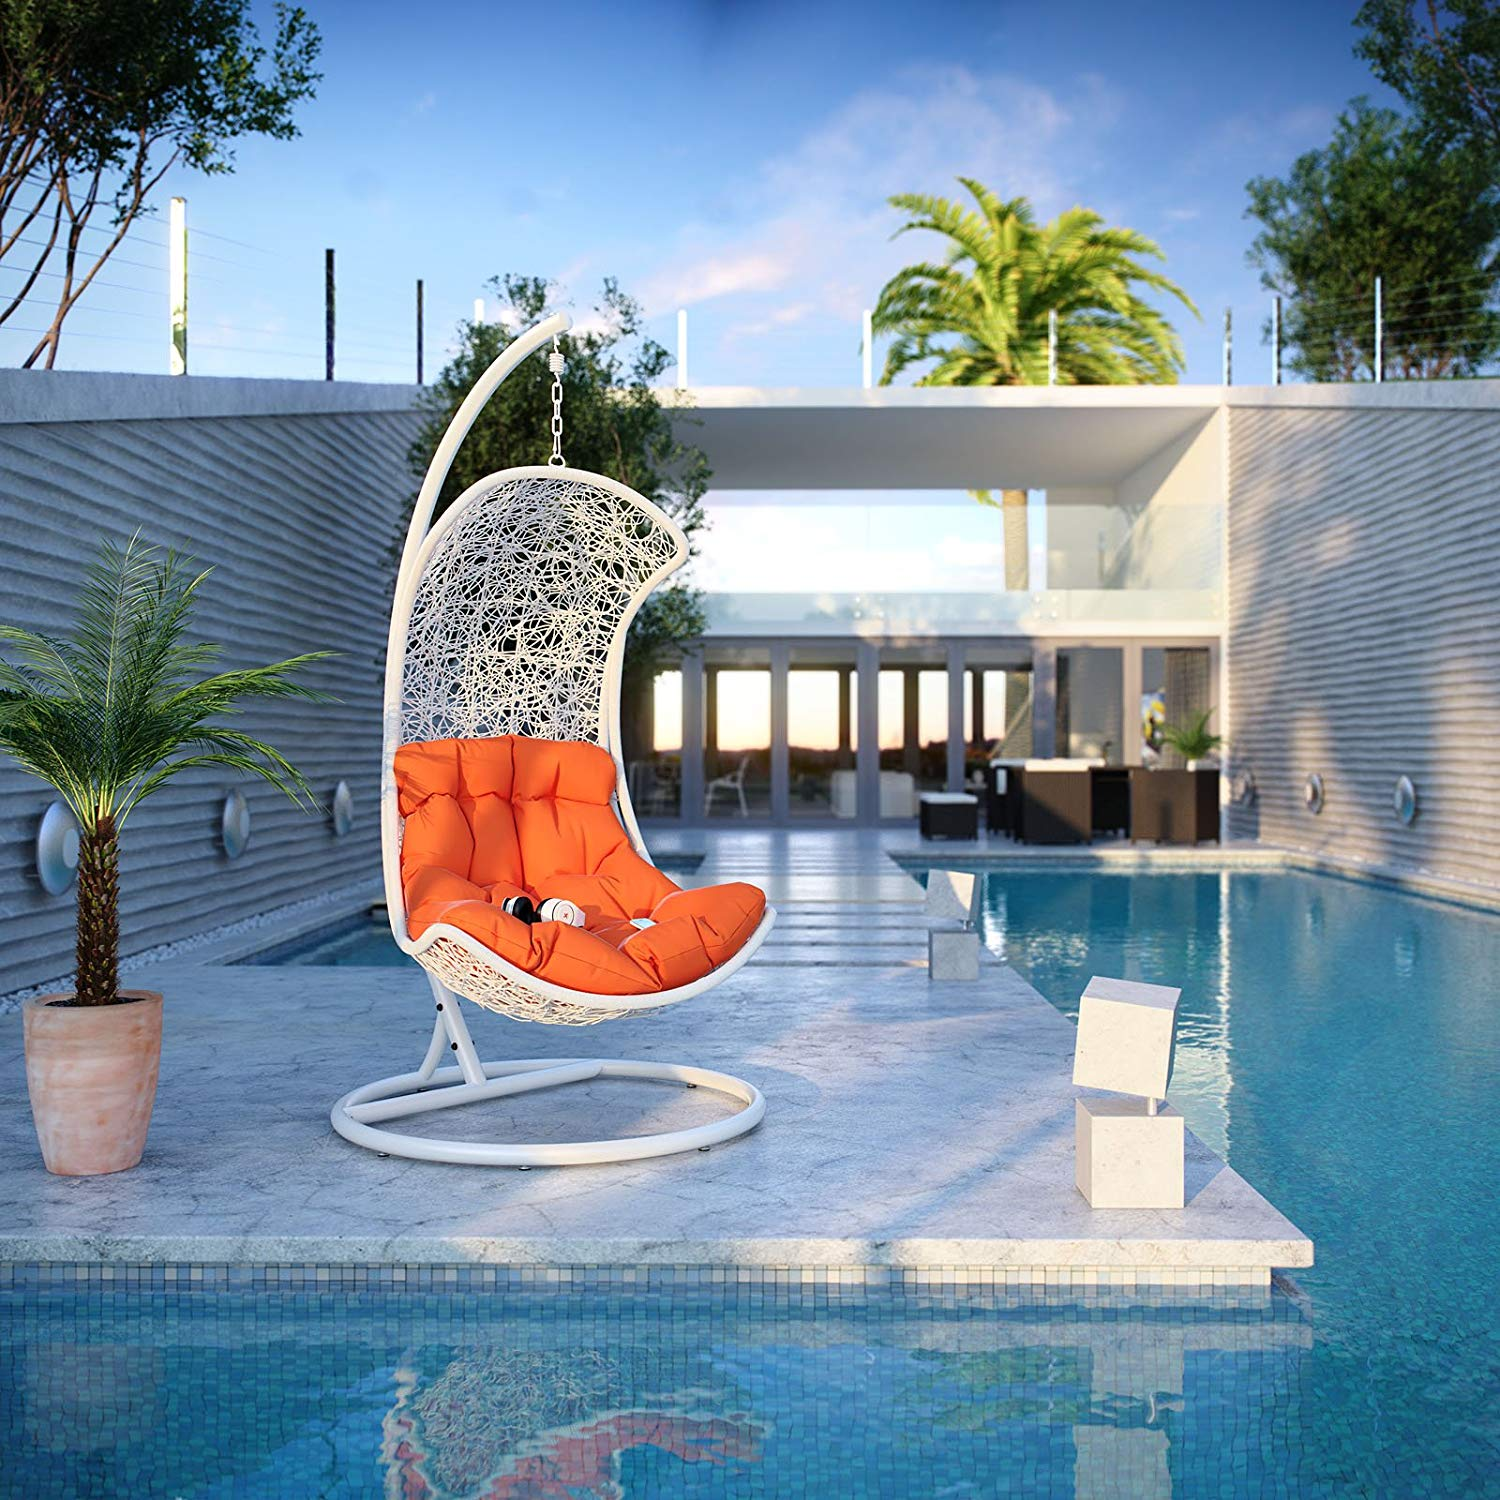 Endow White Outdoor Wicker Patio Swing Chair Set with Stand- Modway Review